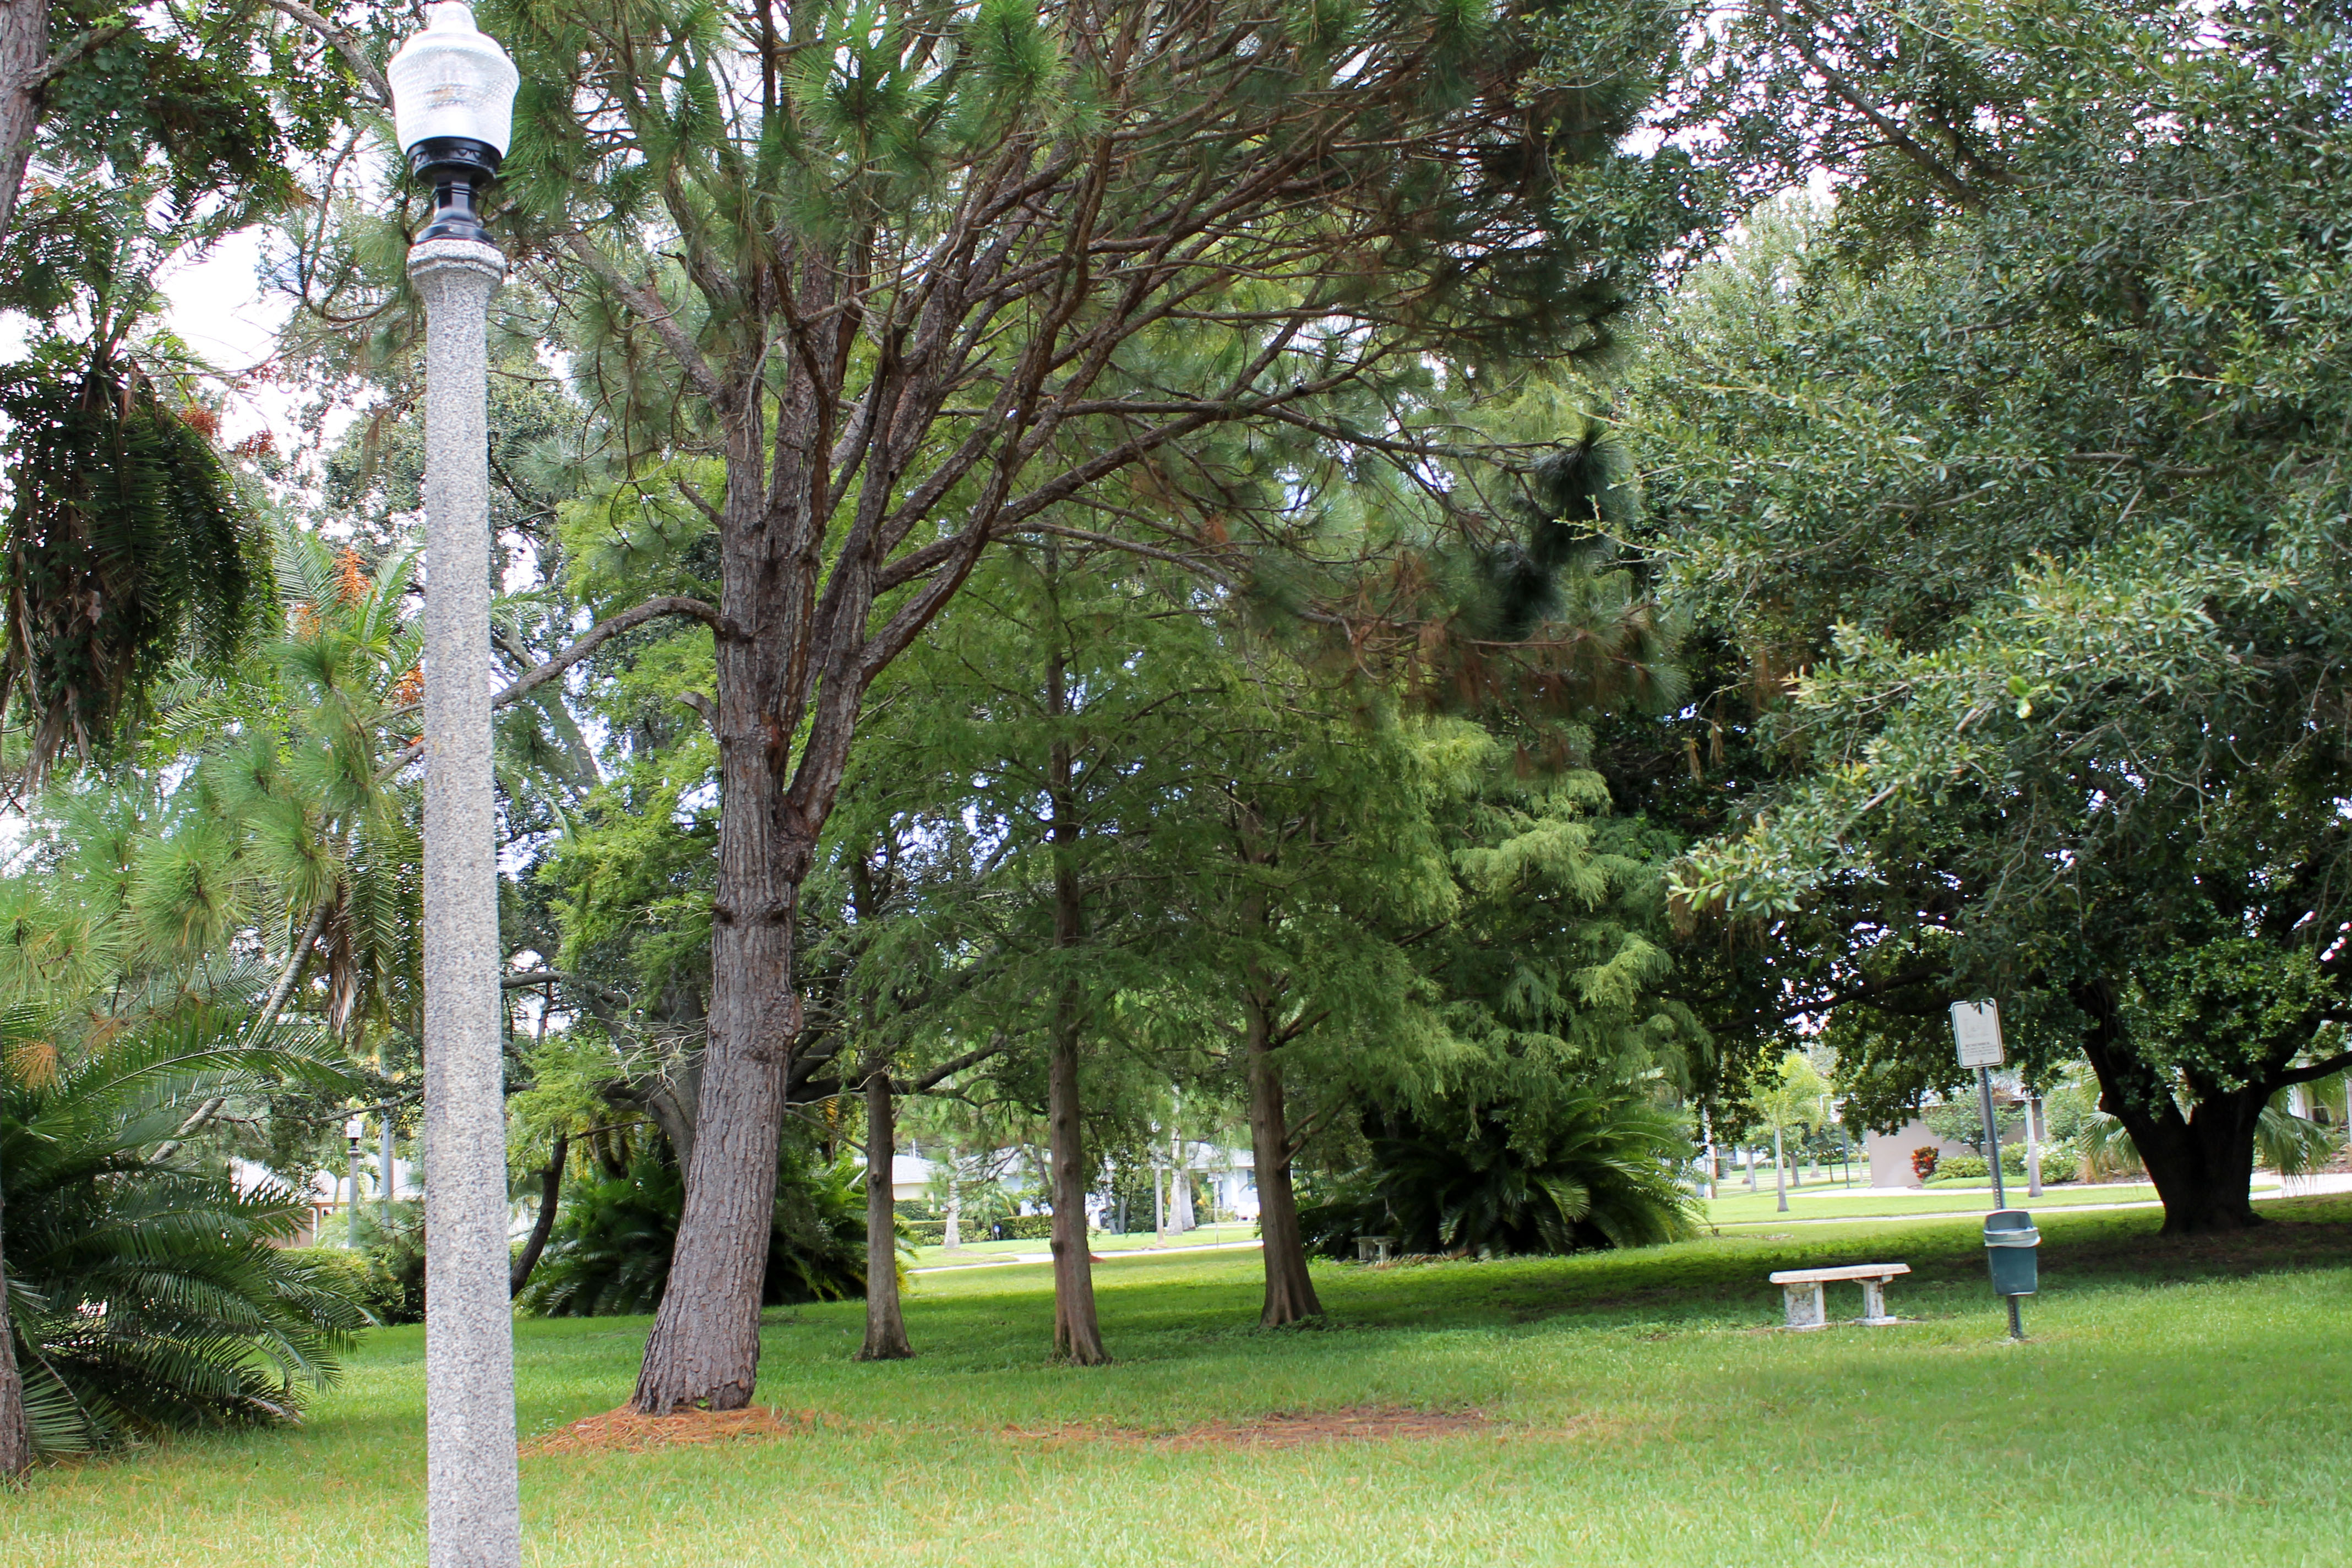 Light pole in Pinellas Park with trees, a bench, and a dog pot in the background